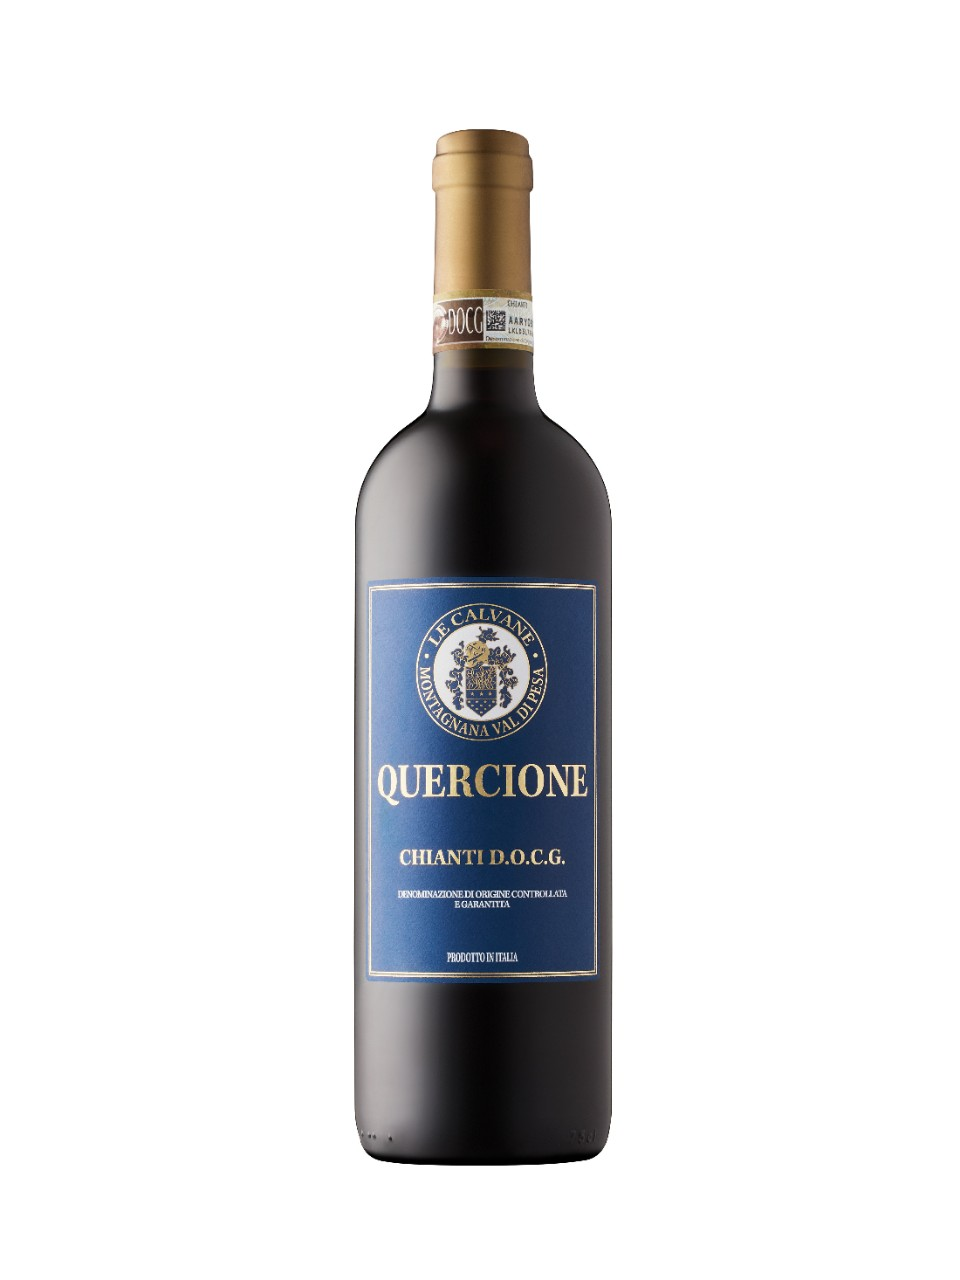 Image for Le Calvane Quercione Chianti 2015 from LCBO